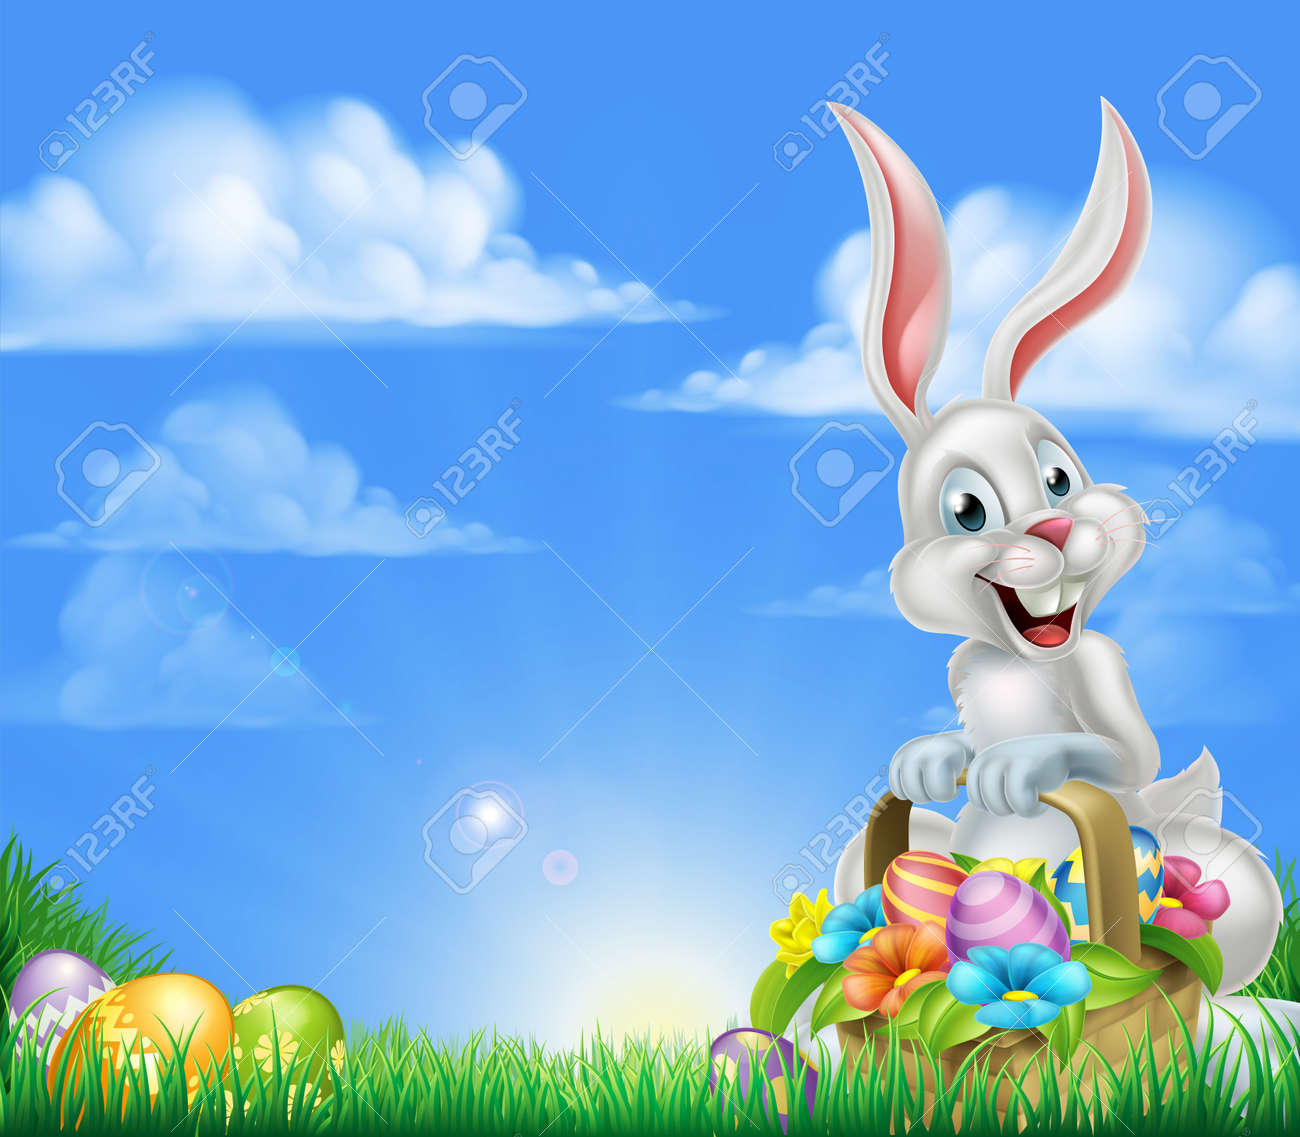 White Easter bunny with a basket full of decorated chocolate Easter eggs in a field Easter background - 52211438